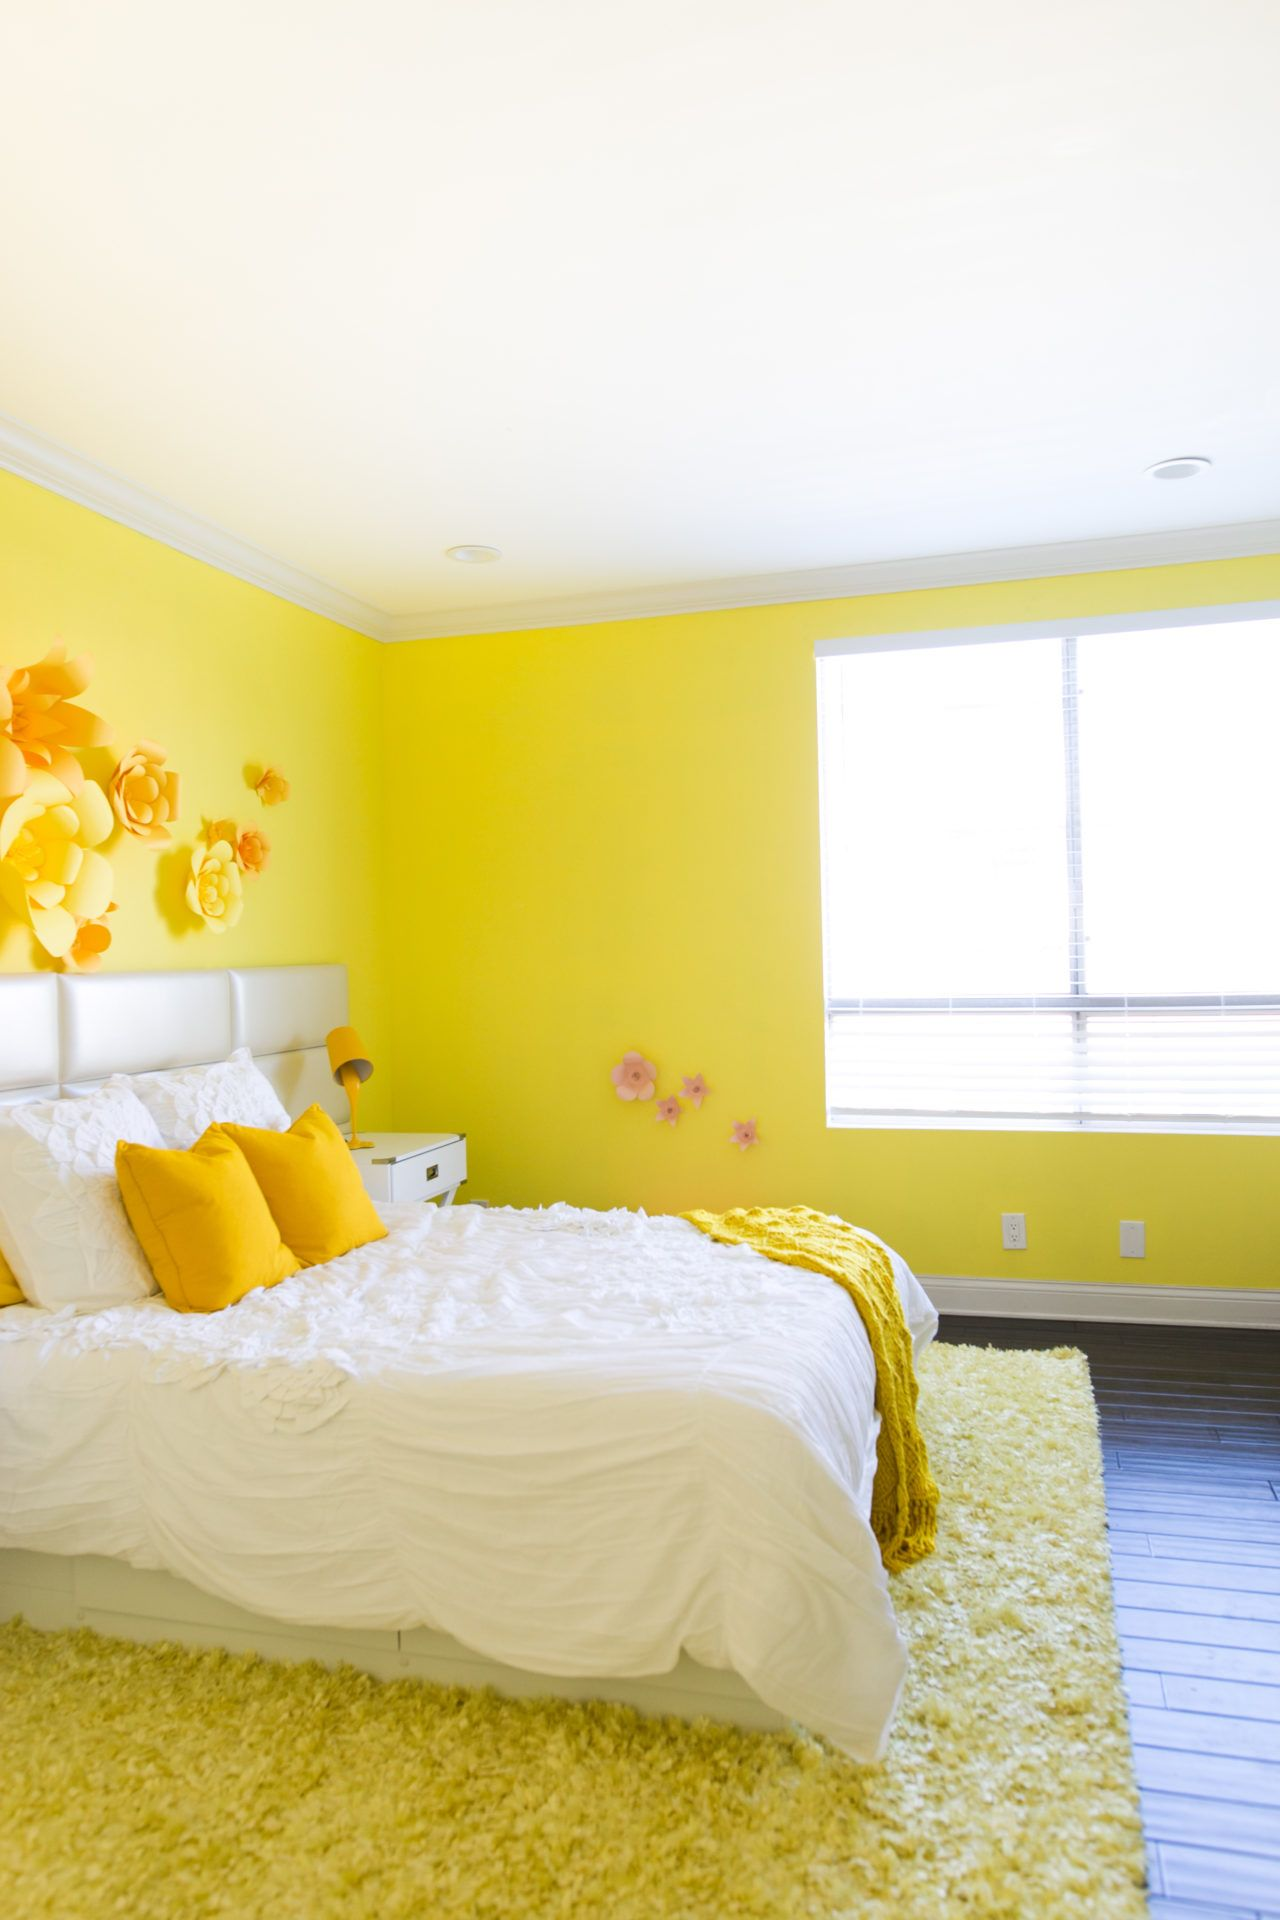 Adelaine morin   hello yellow bedroom makeover also best abby images on pinterest birthdays fiesta decorations and rh